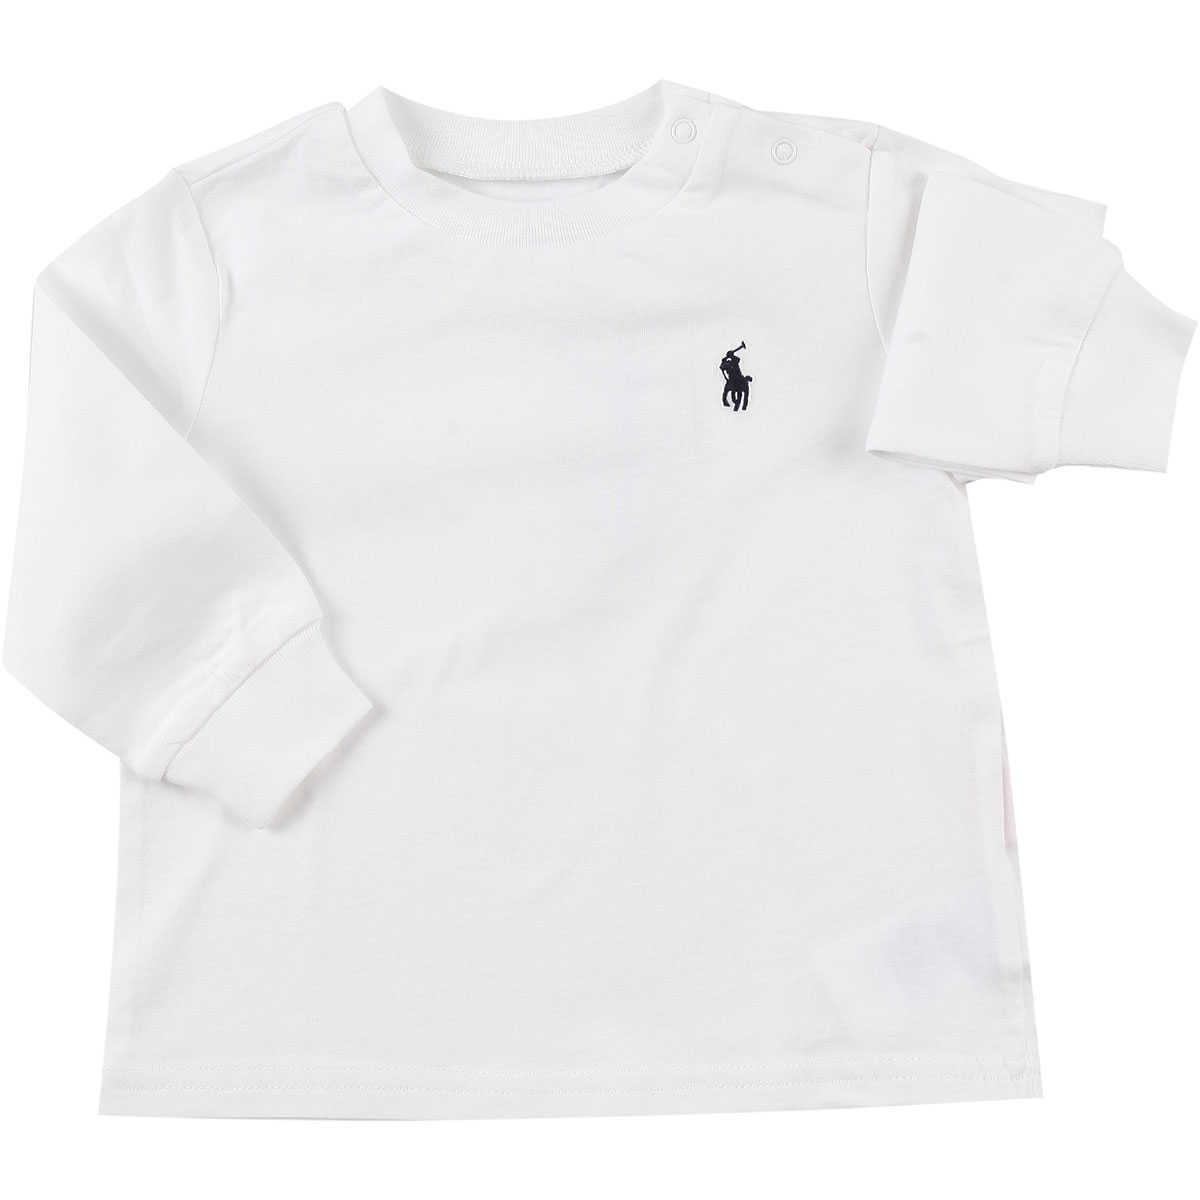 Ralph Lauren Baby T-Shirt for Boys On Sale in Outlet White UK - GOOFASH - Mens T-SHIRTS